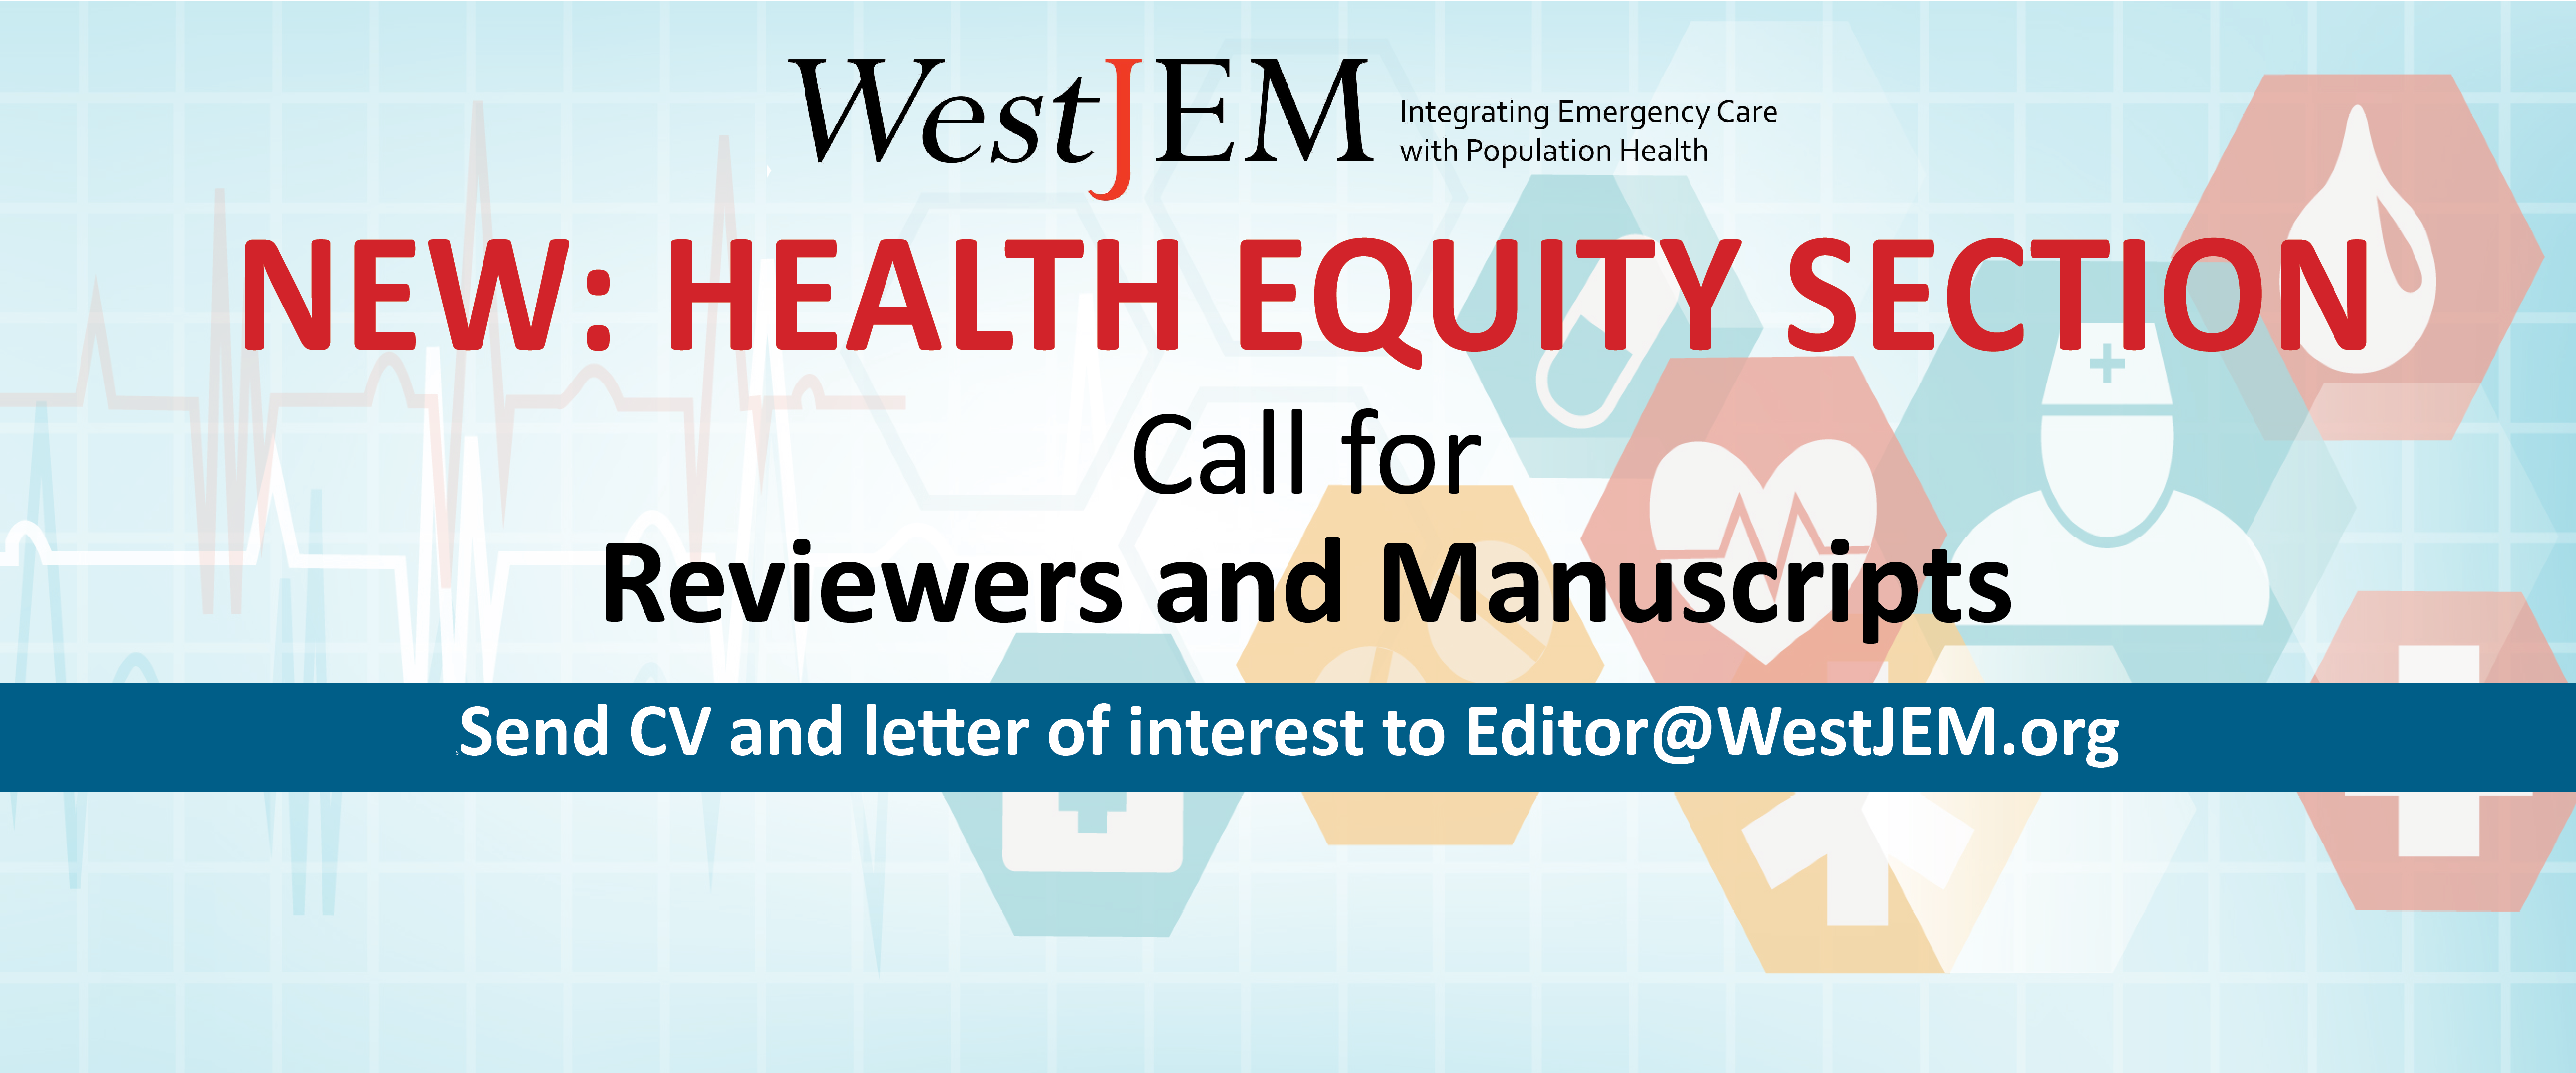 Health-Equity-Banner-Draft-1